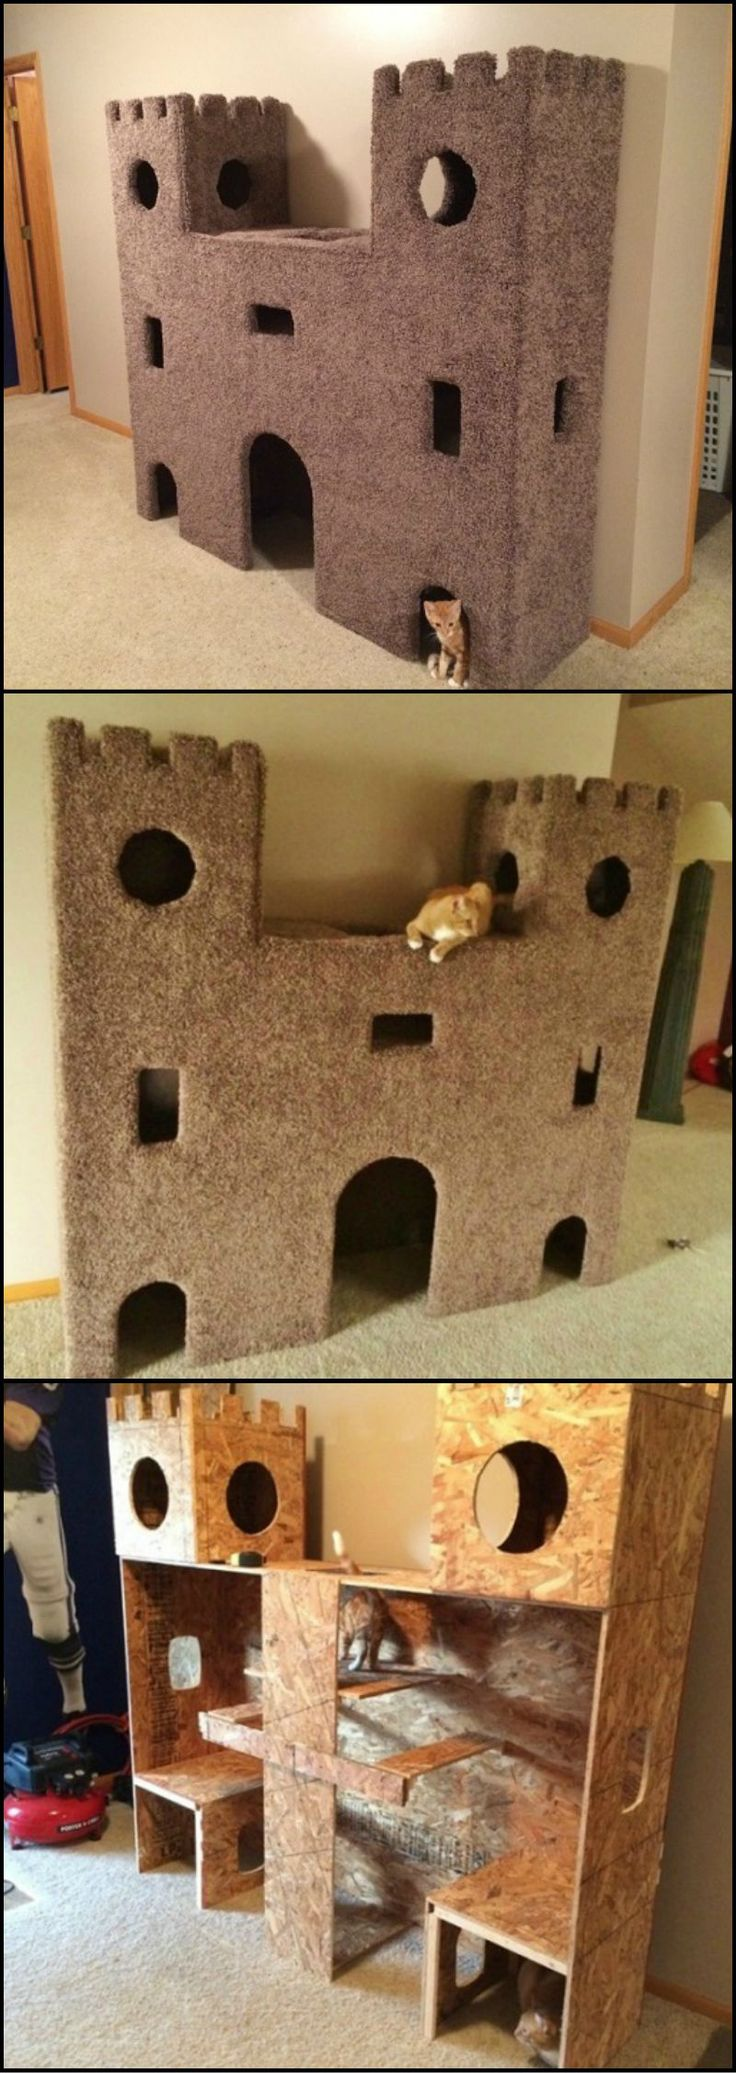 we found the ultimate cat castle this is a great idea to keep our indoor - Cat Room Design Ideas